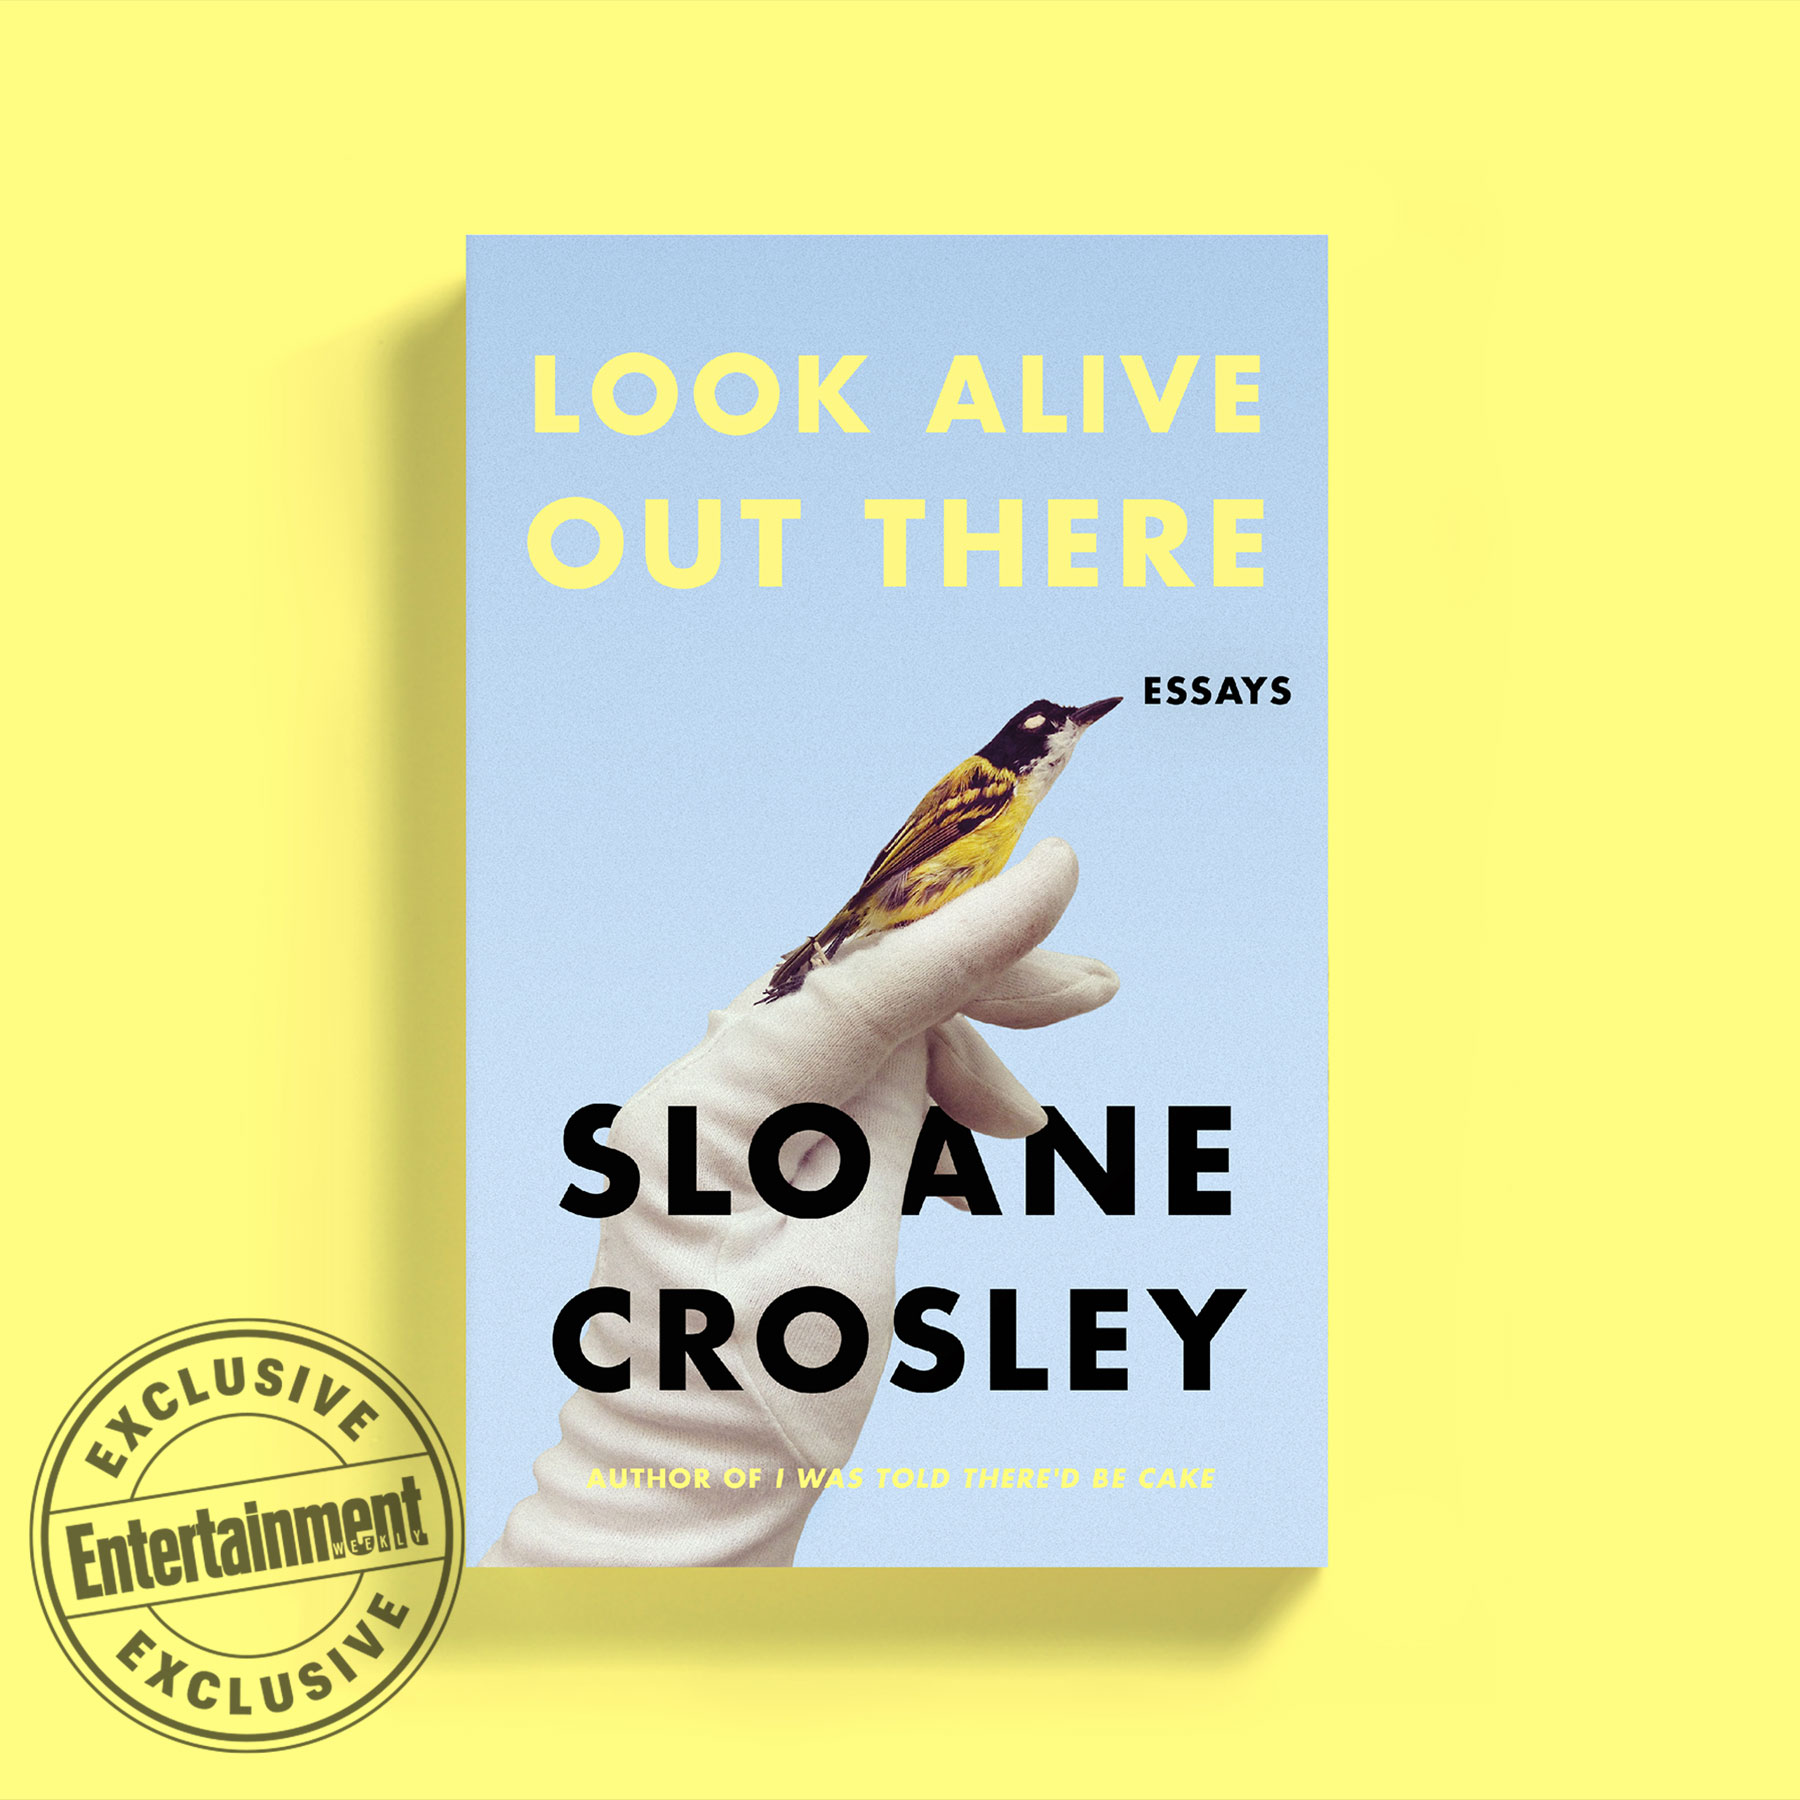 013 Essay Collection Example Sloane Crosley Shocking Collections For Students 2017 Best Pdf Full